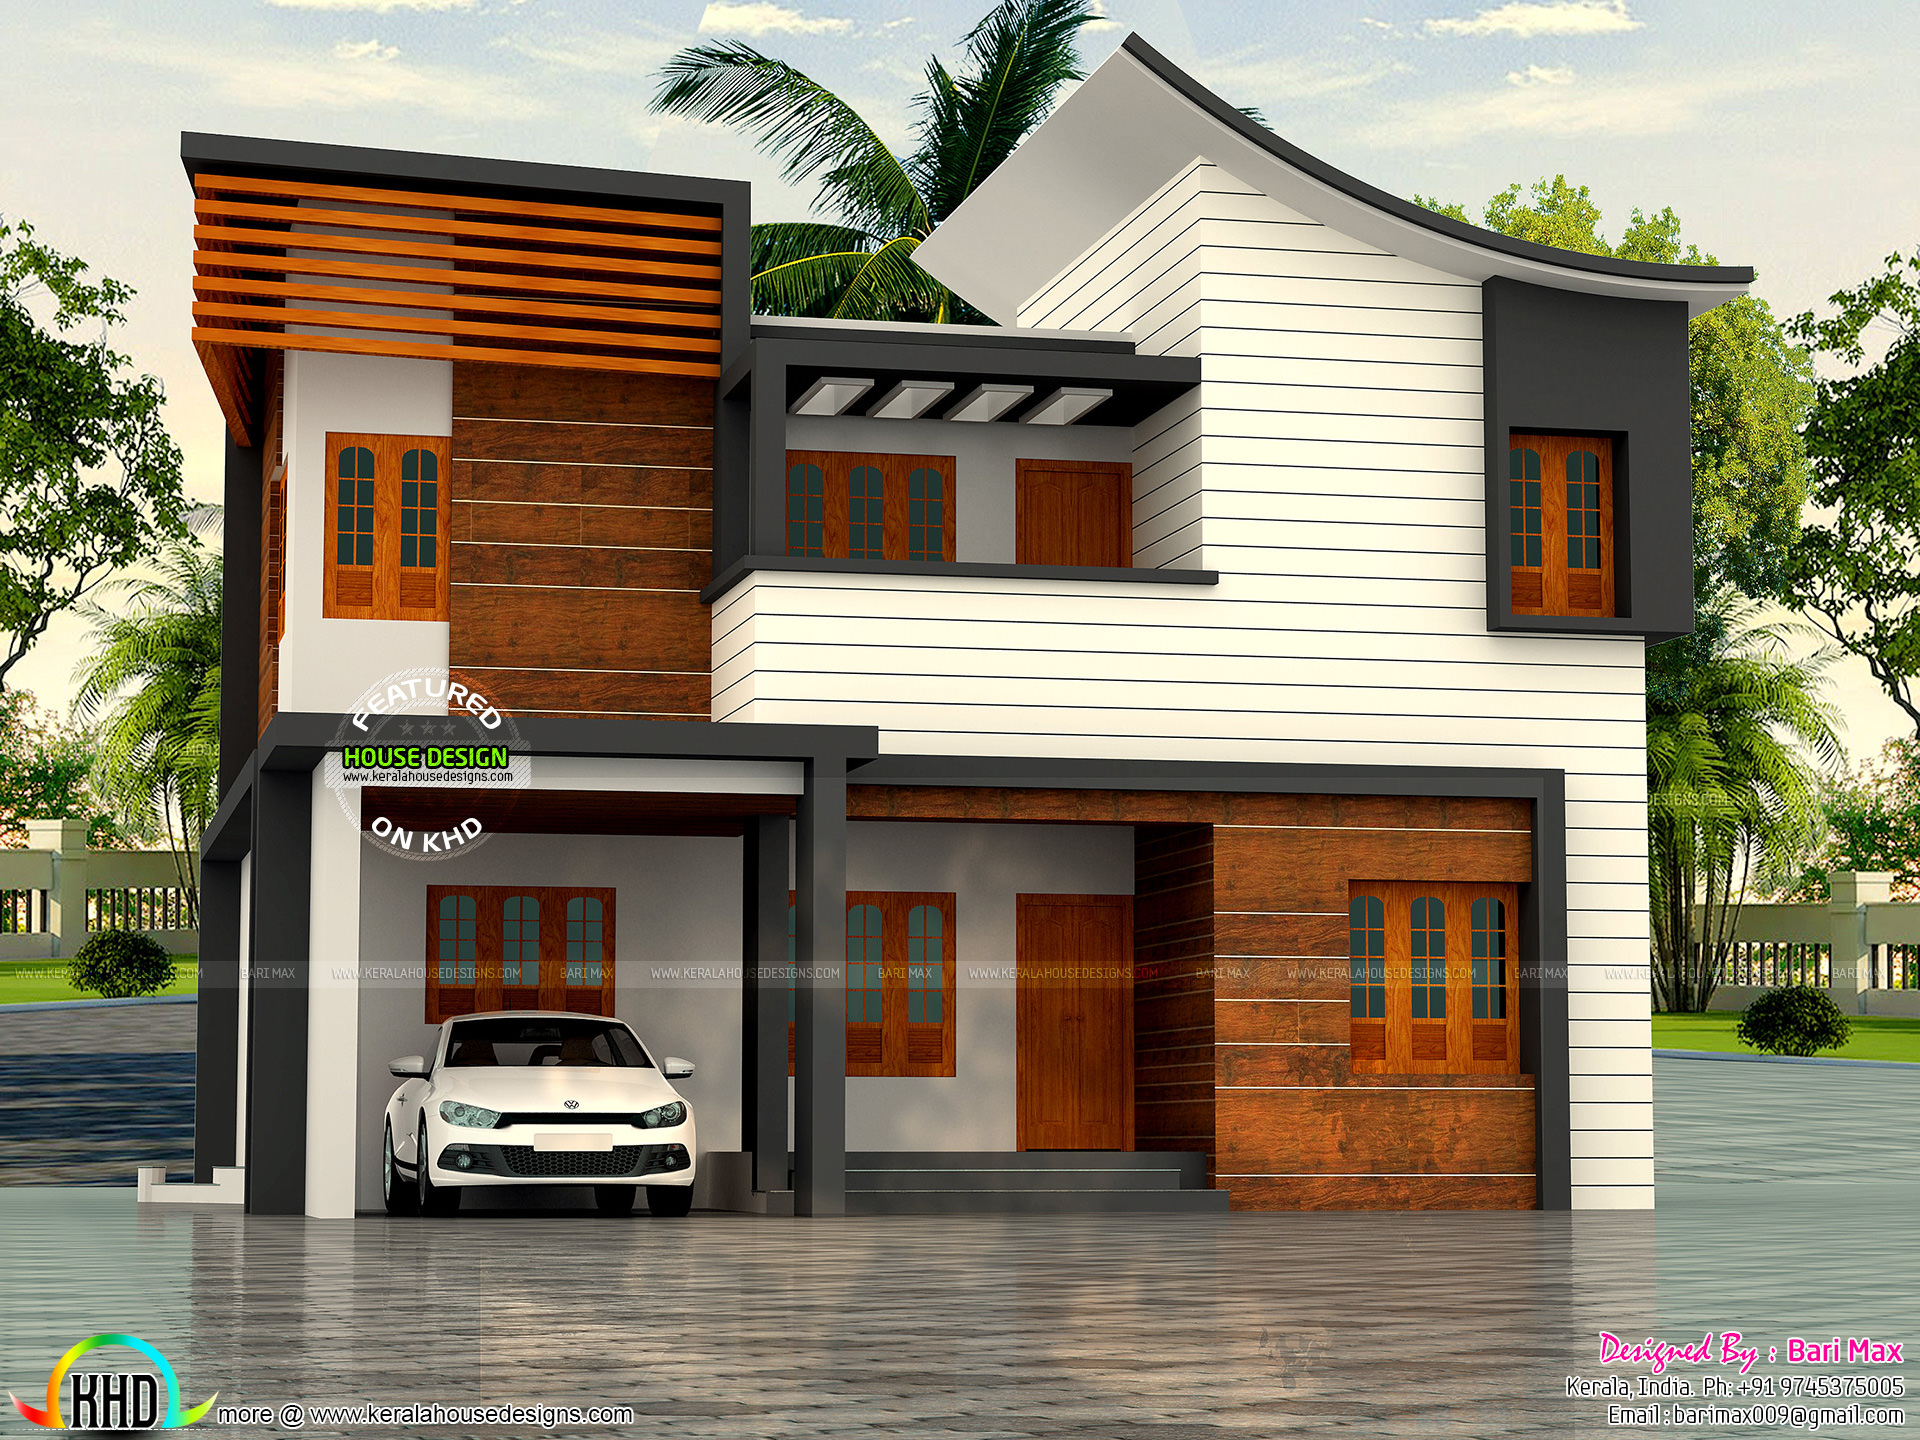 30 lakh cost 1900 sq ft 4 bedroom home kerala home for House plans with estimated cost to build in kerala